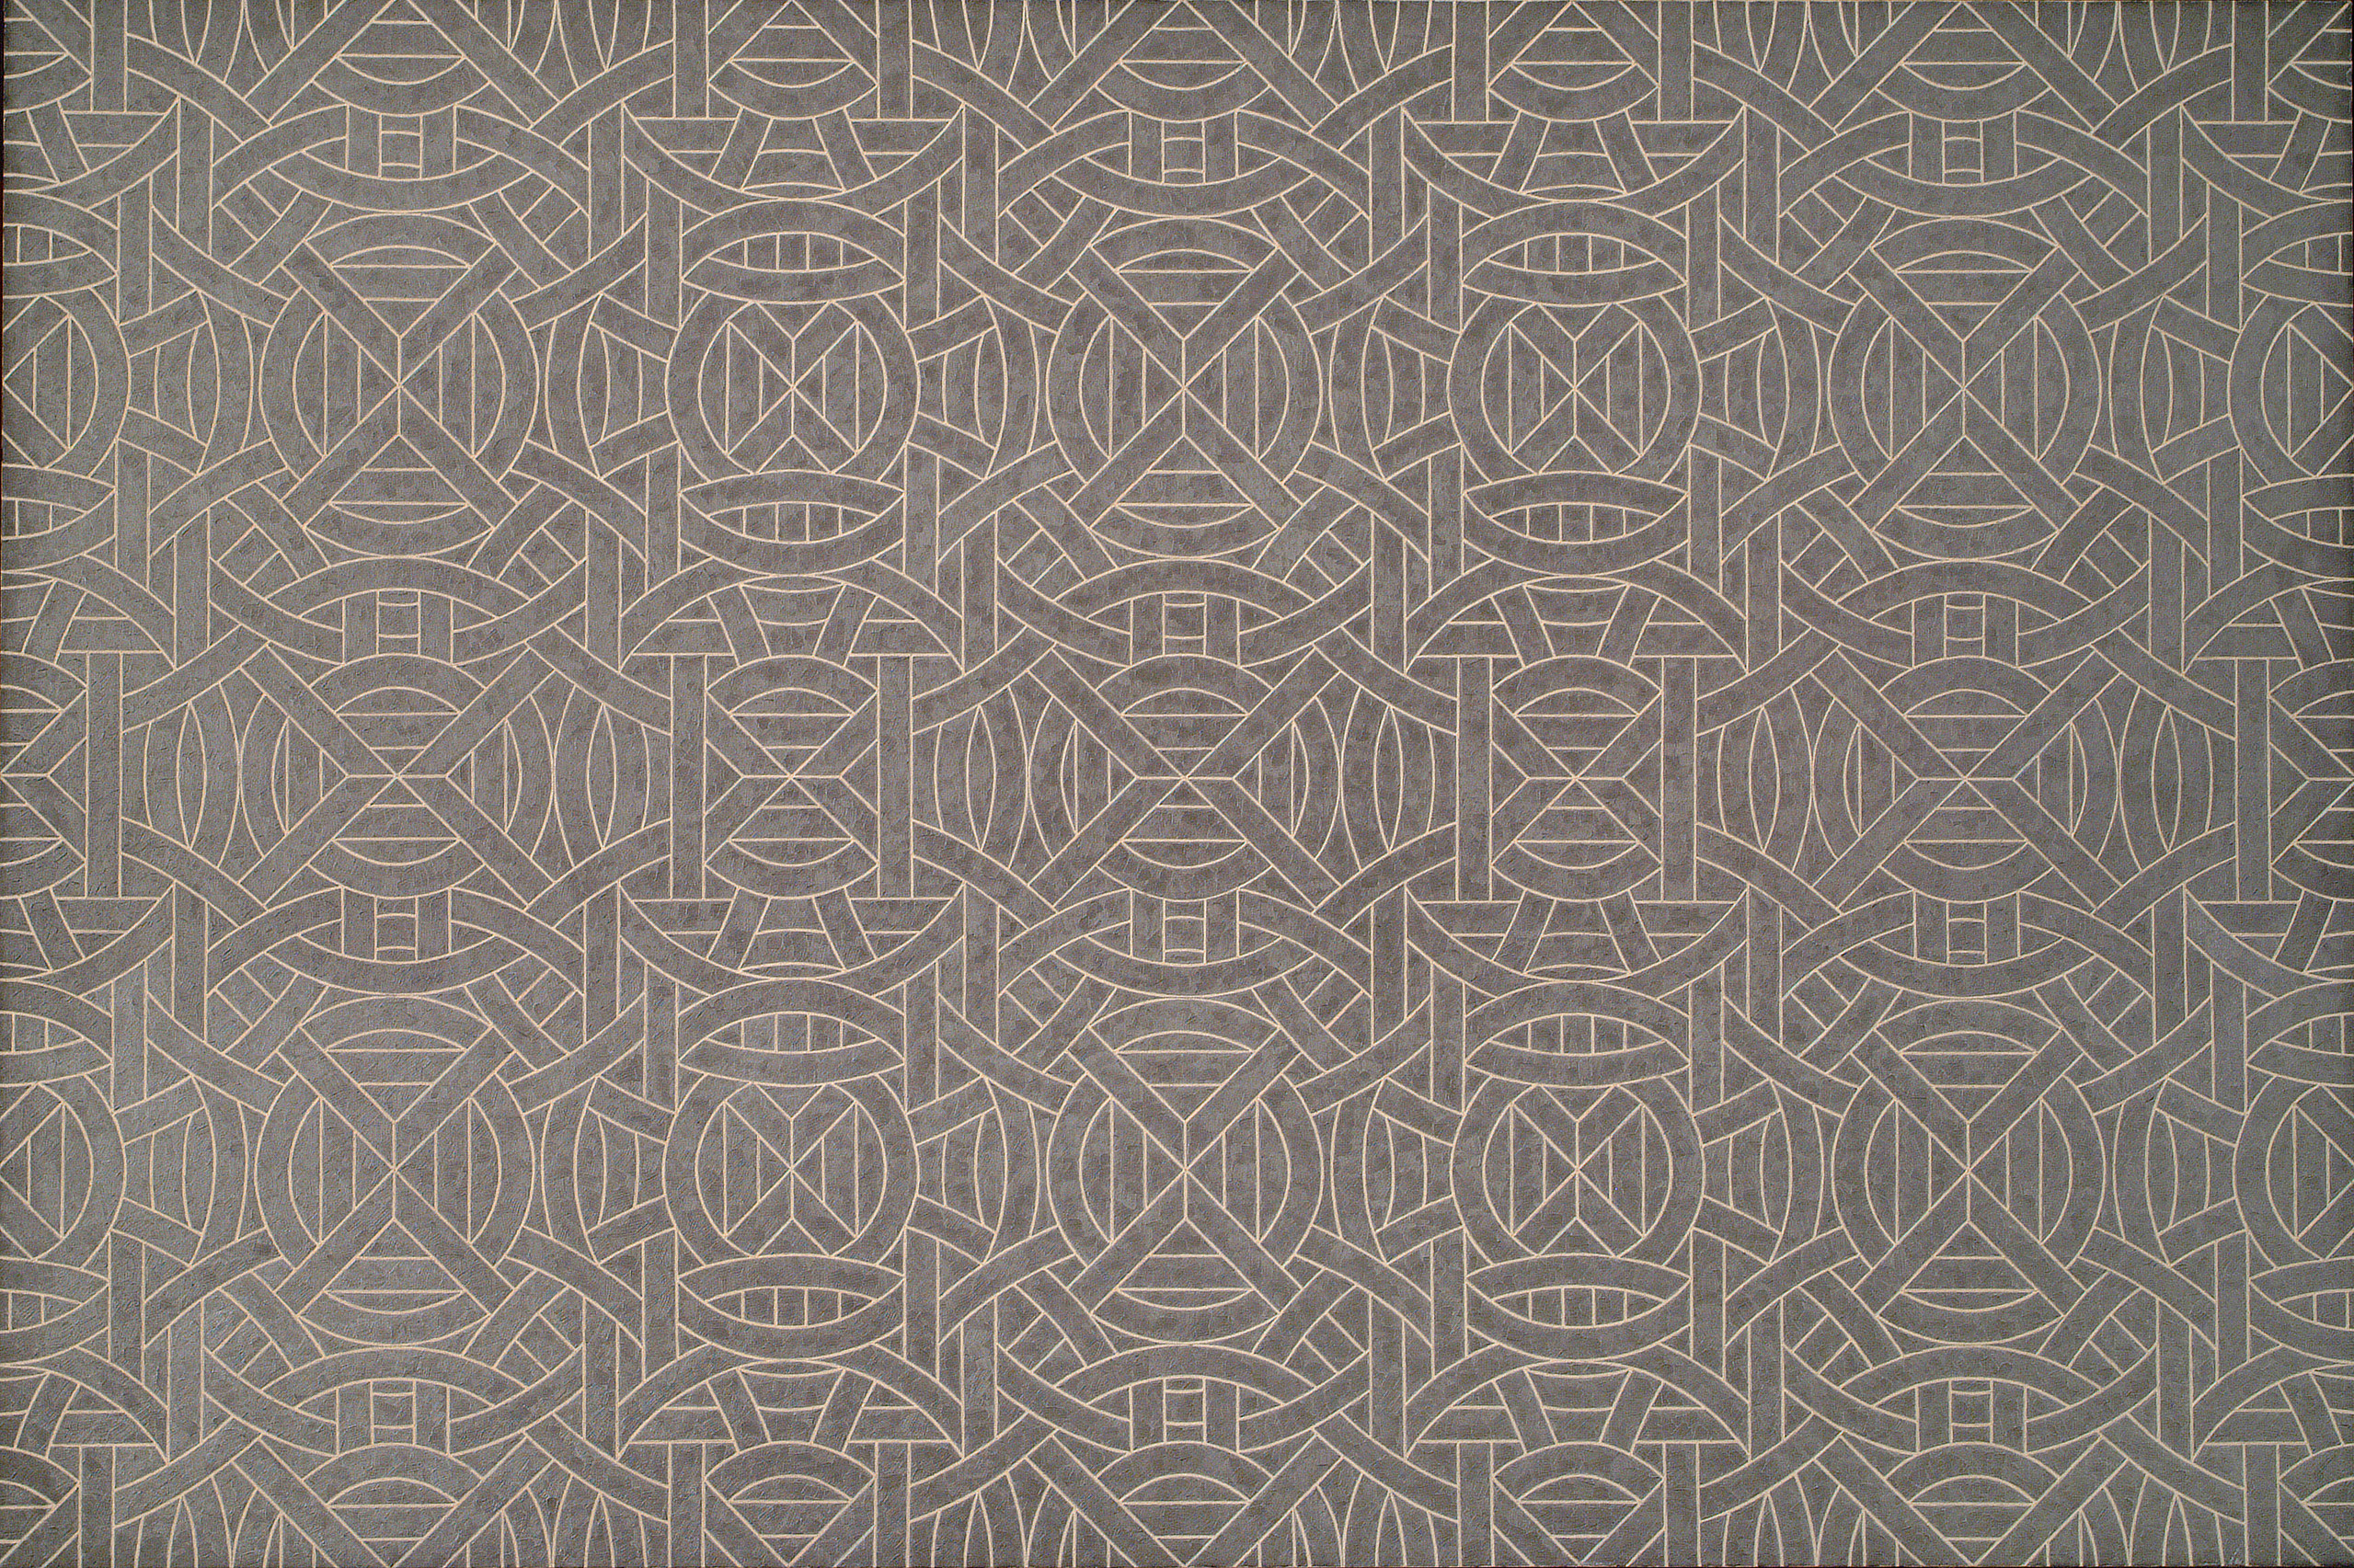 A large, abstract painting features a black/dark grey background atop which geometric forms, arranged in repeating patterns, are painted in silver paint.